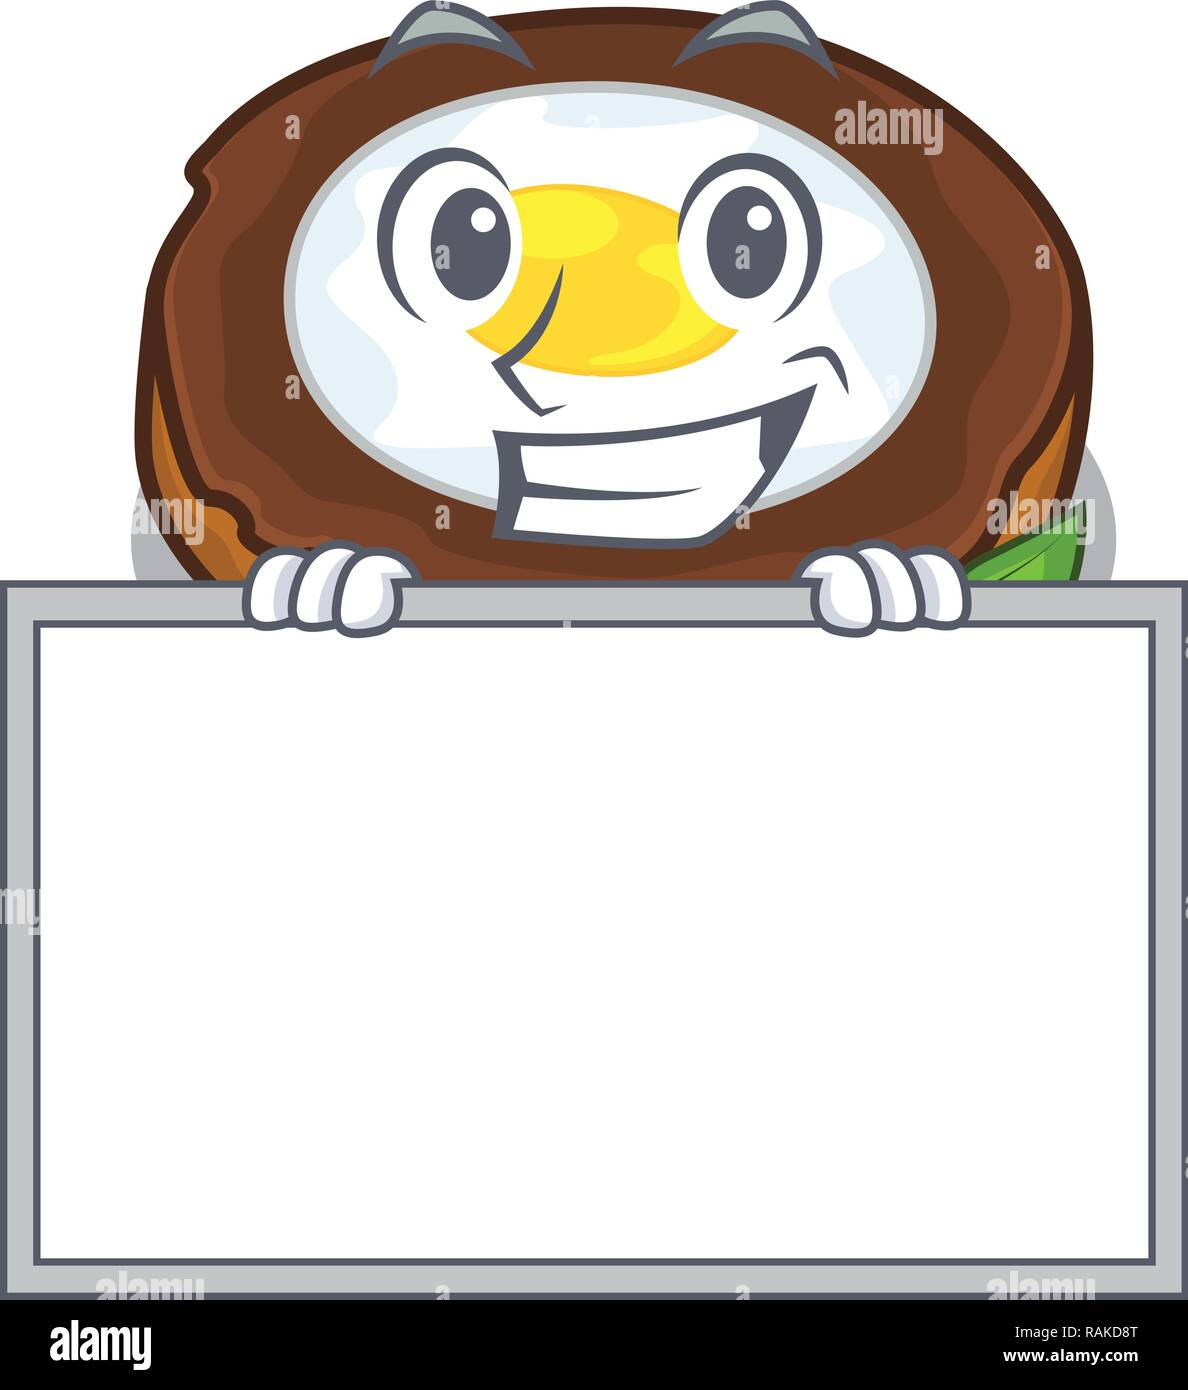 Grinning with board egg scotch cartoons are ready served - Stock Vector